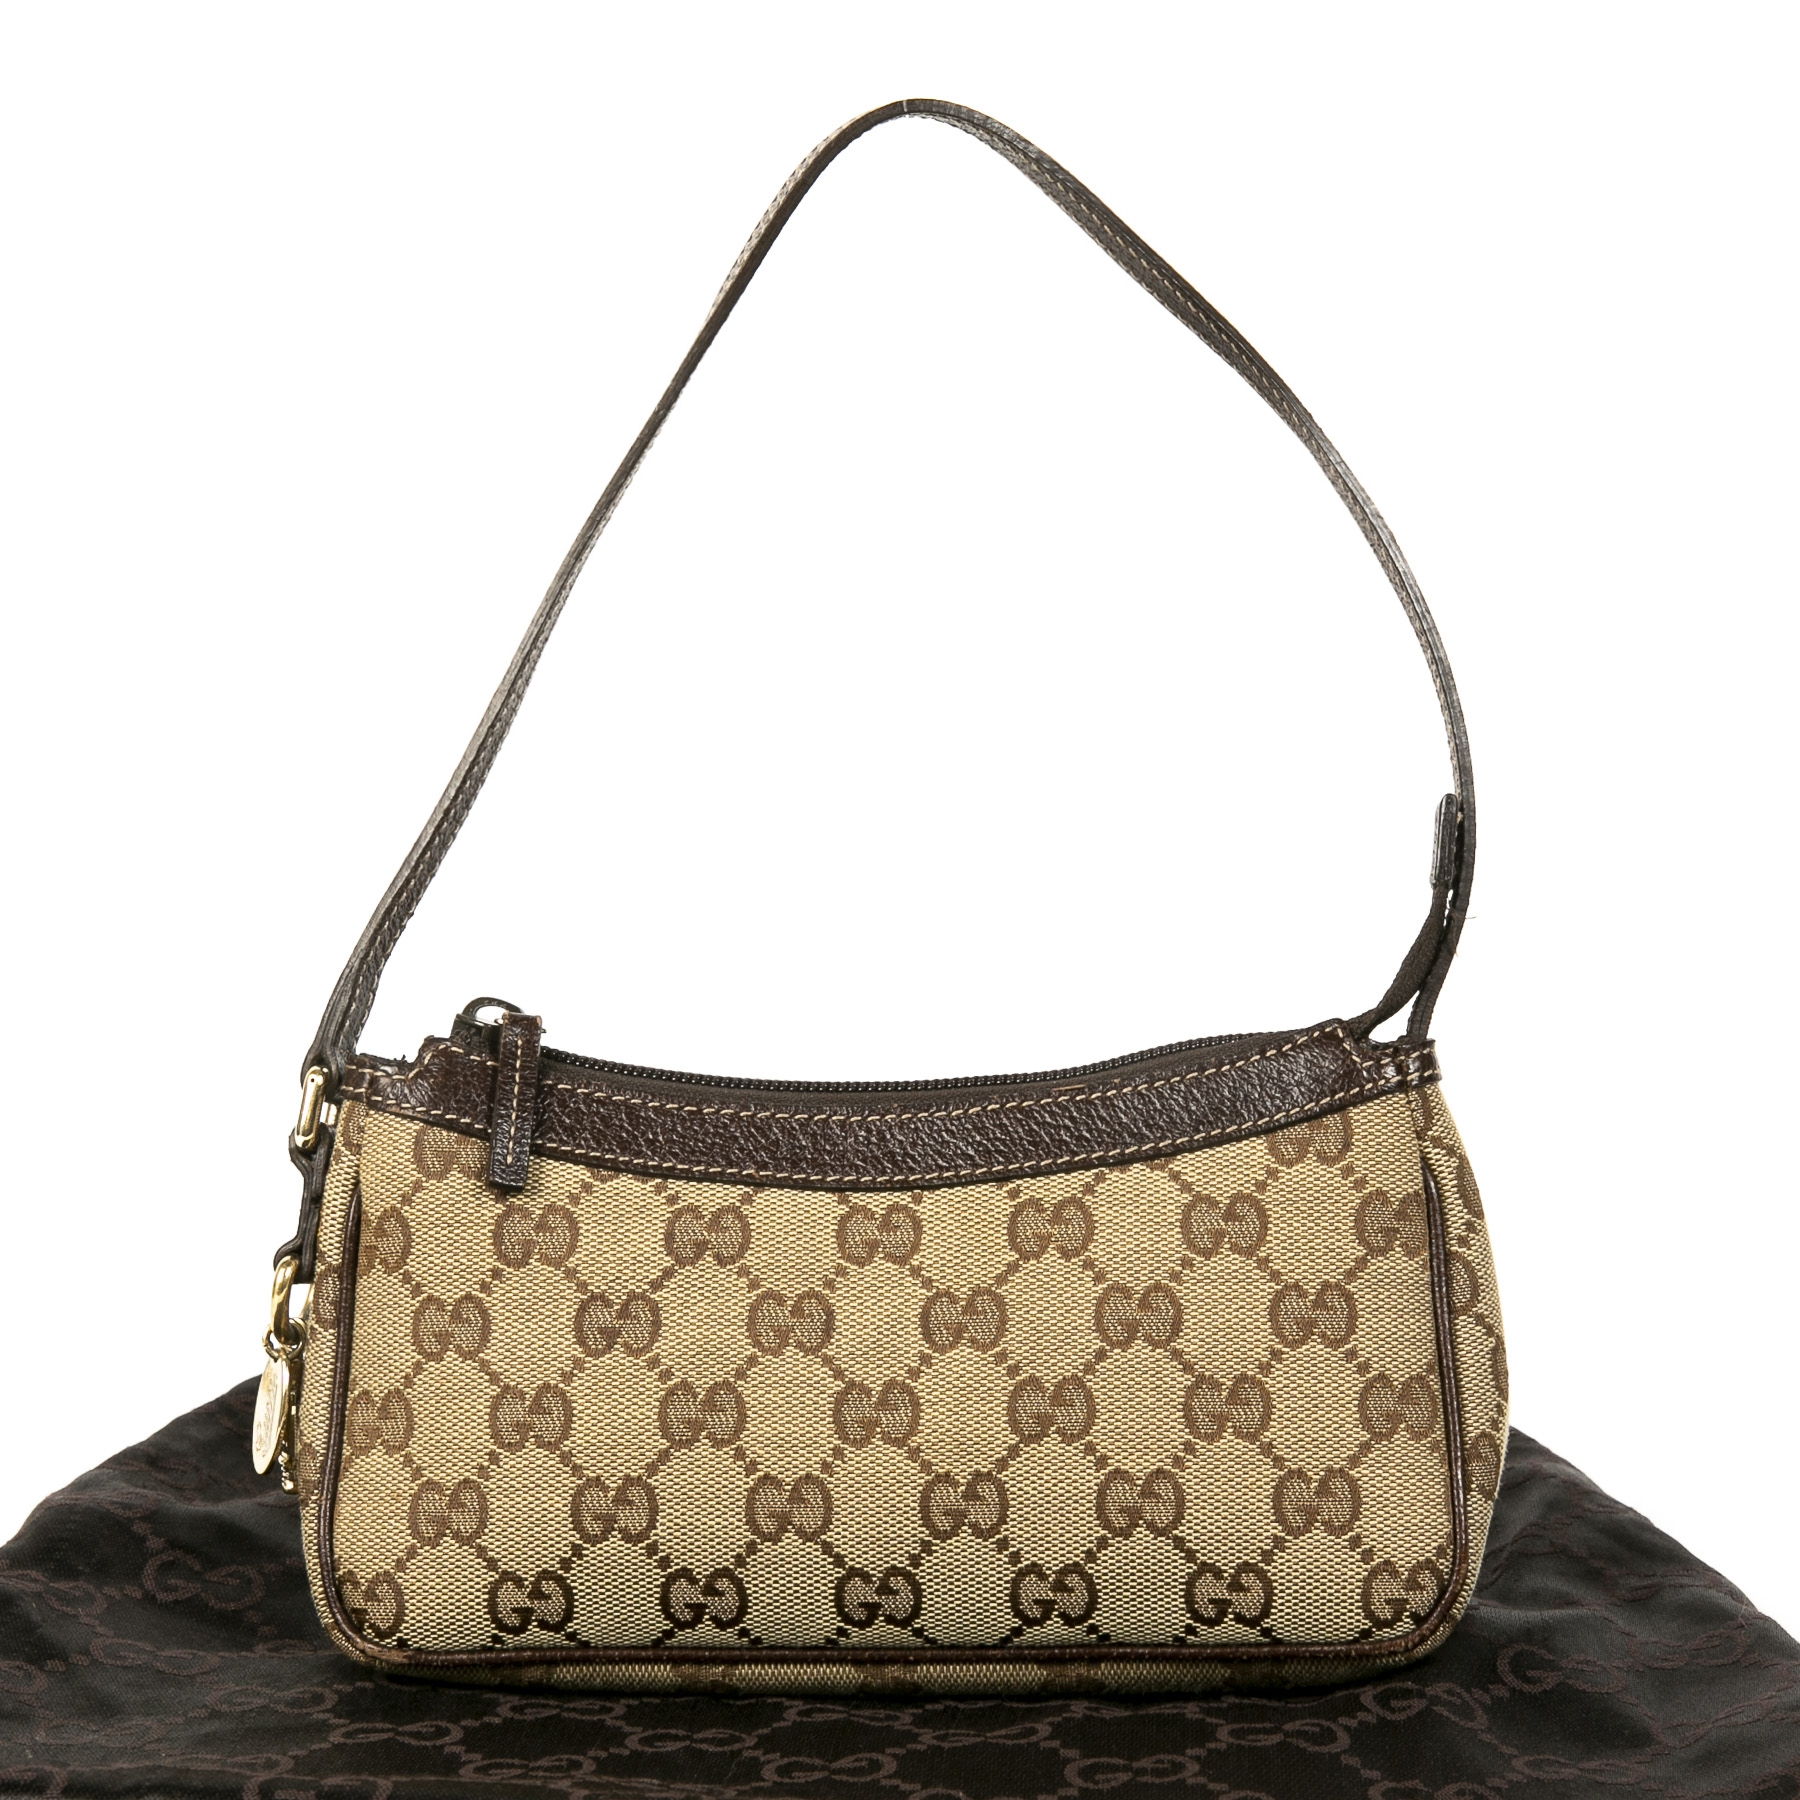 Gucci Monogram Charm Pochette Bag